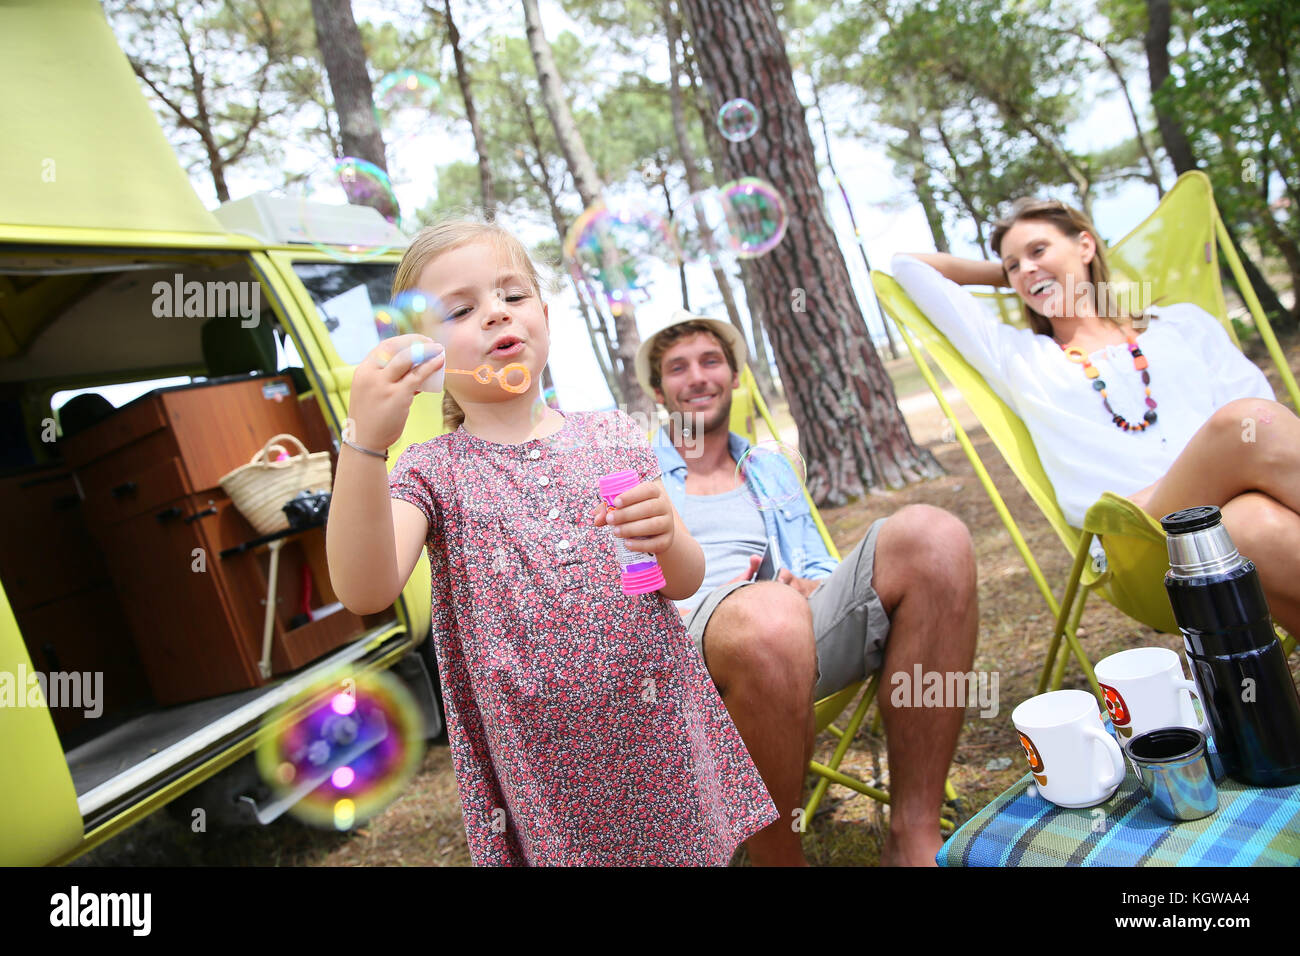 Little girl blowing soap bubbles, parents in background - Stock Image